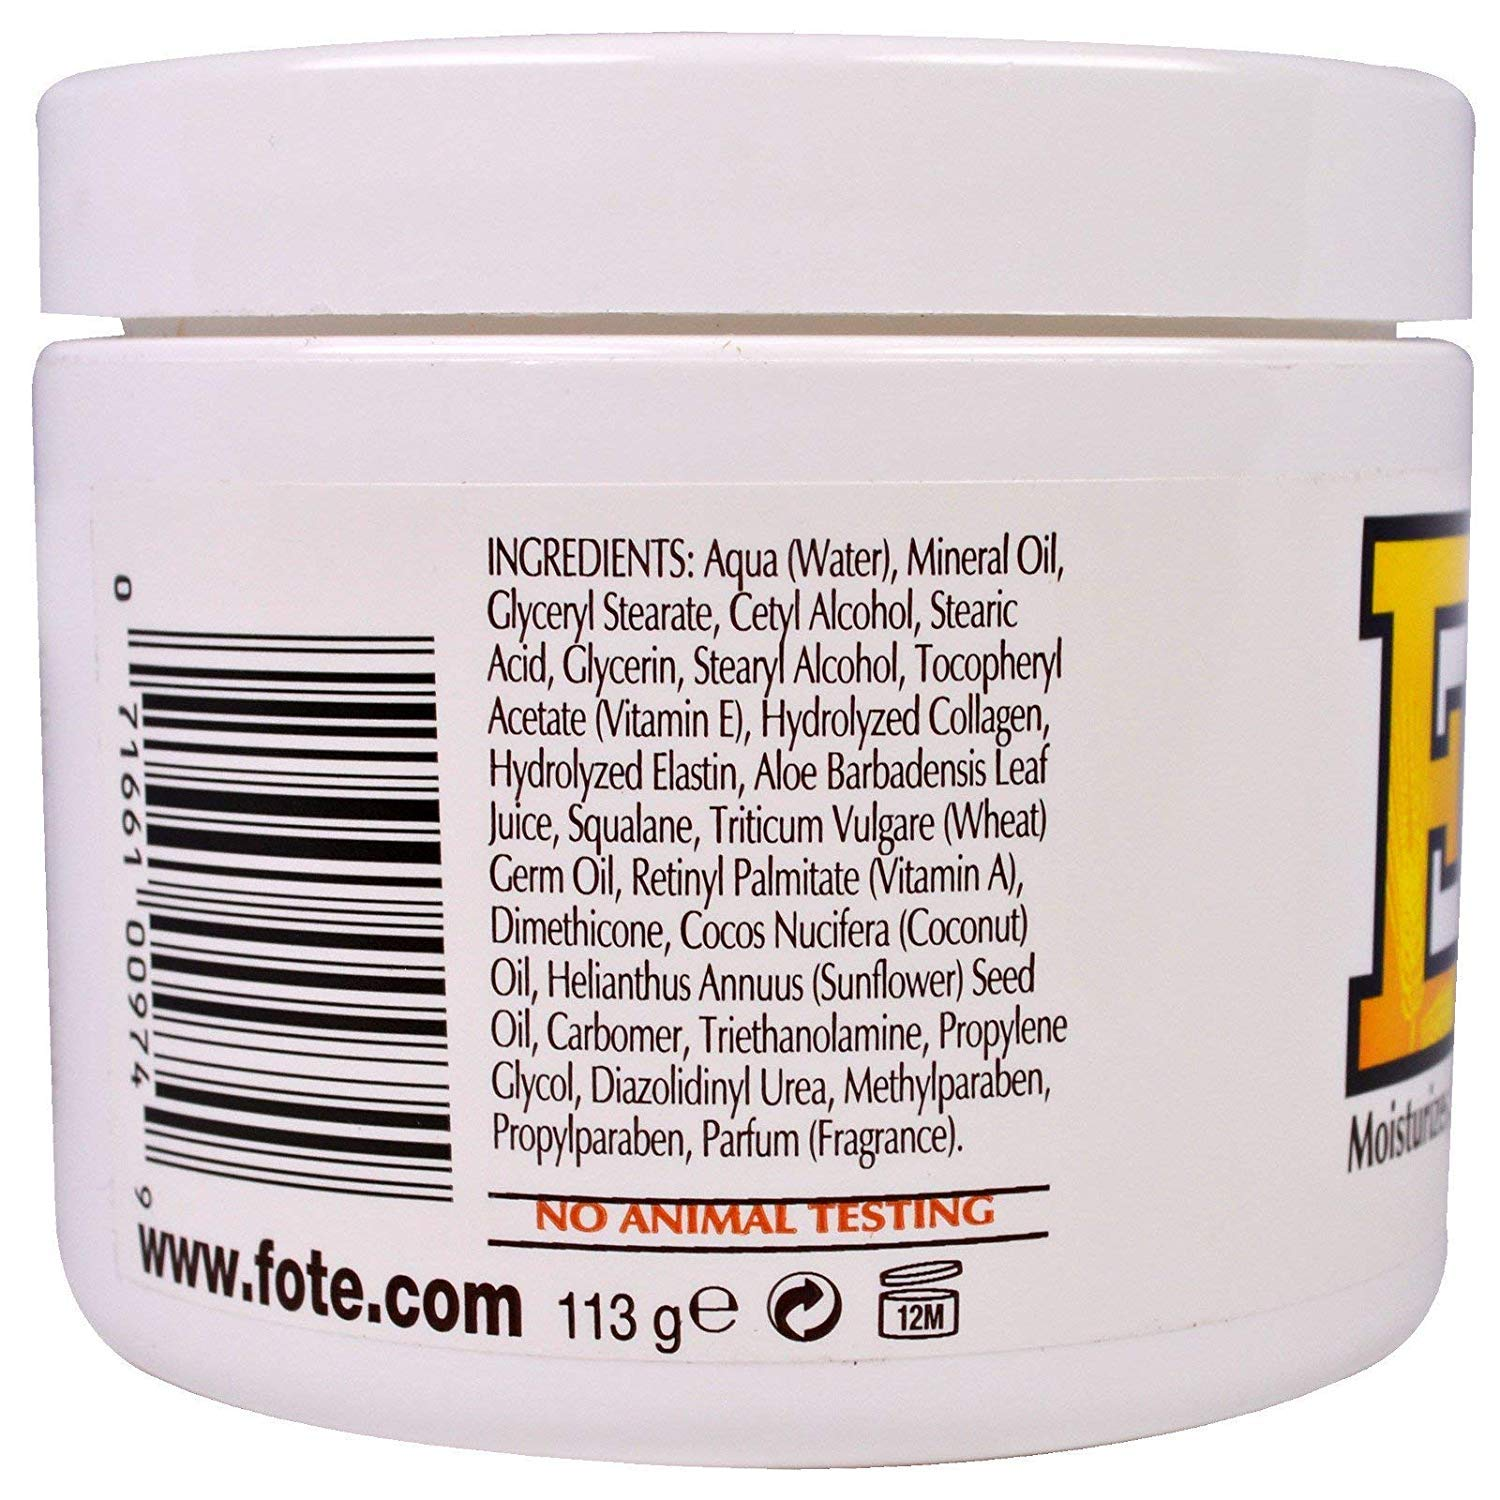 Fruit Of The Earth Fruit Of The Earth Vitamin E Skin Care Cream, 4 oz by Chom